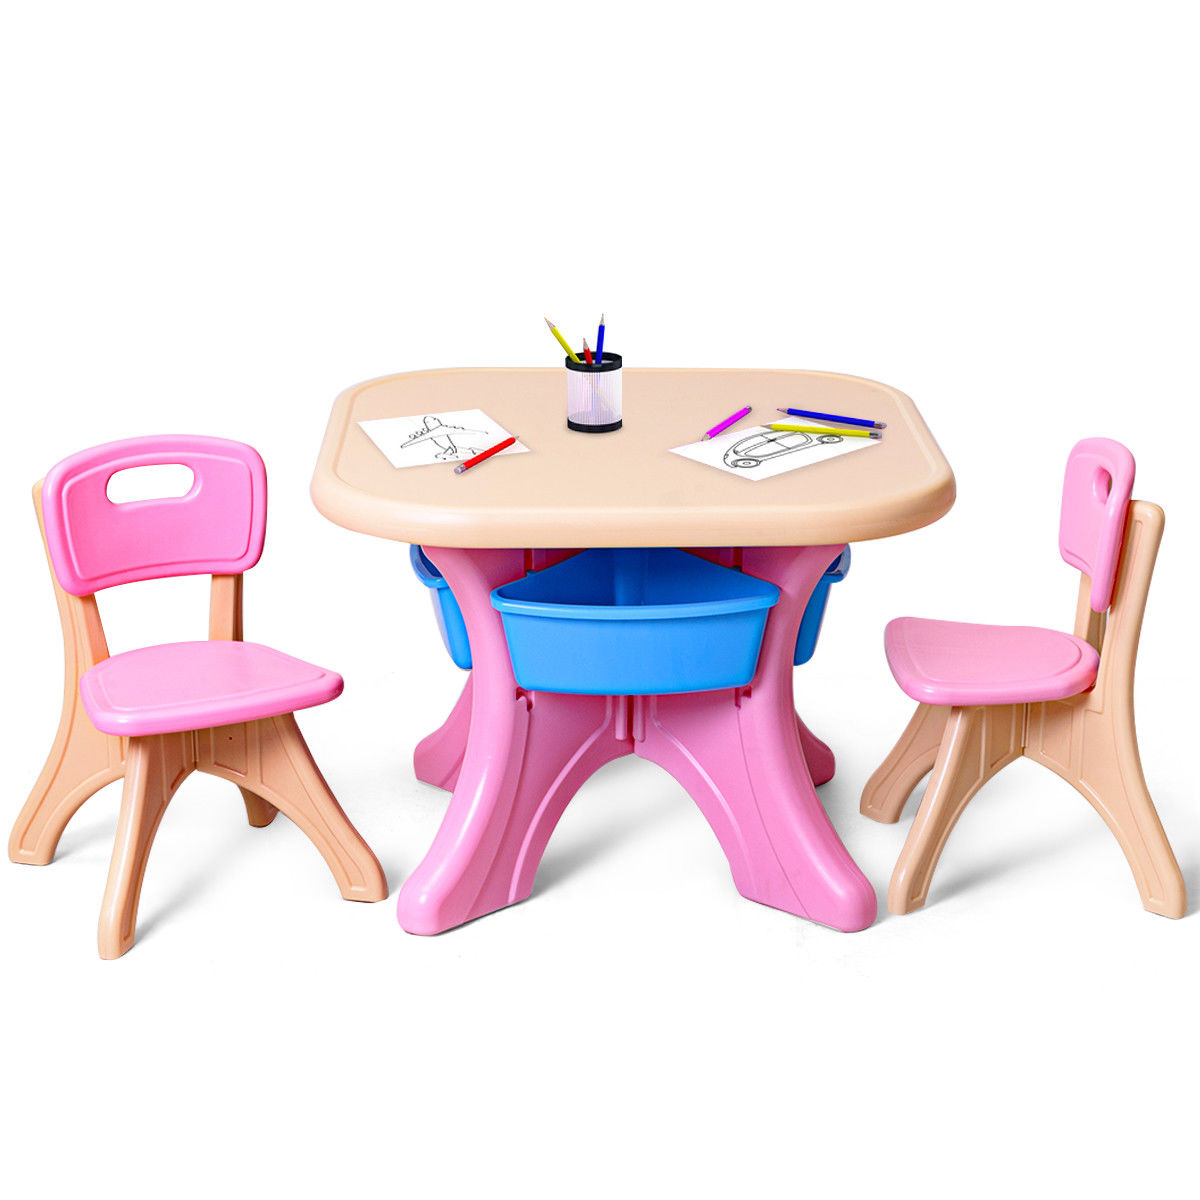 plastic kids table and chairs macys dining gymax children chair set 3 pc play furniture walmart com